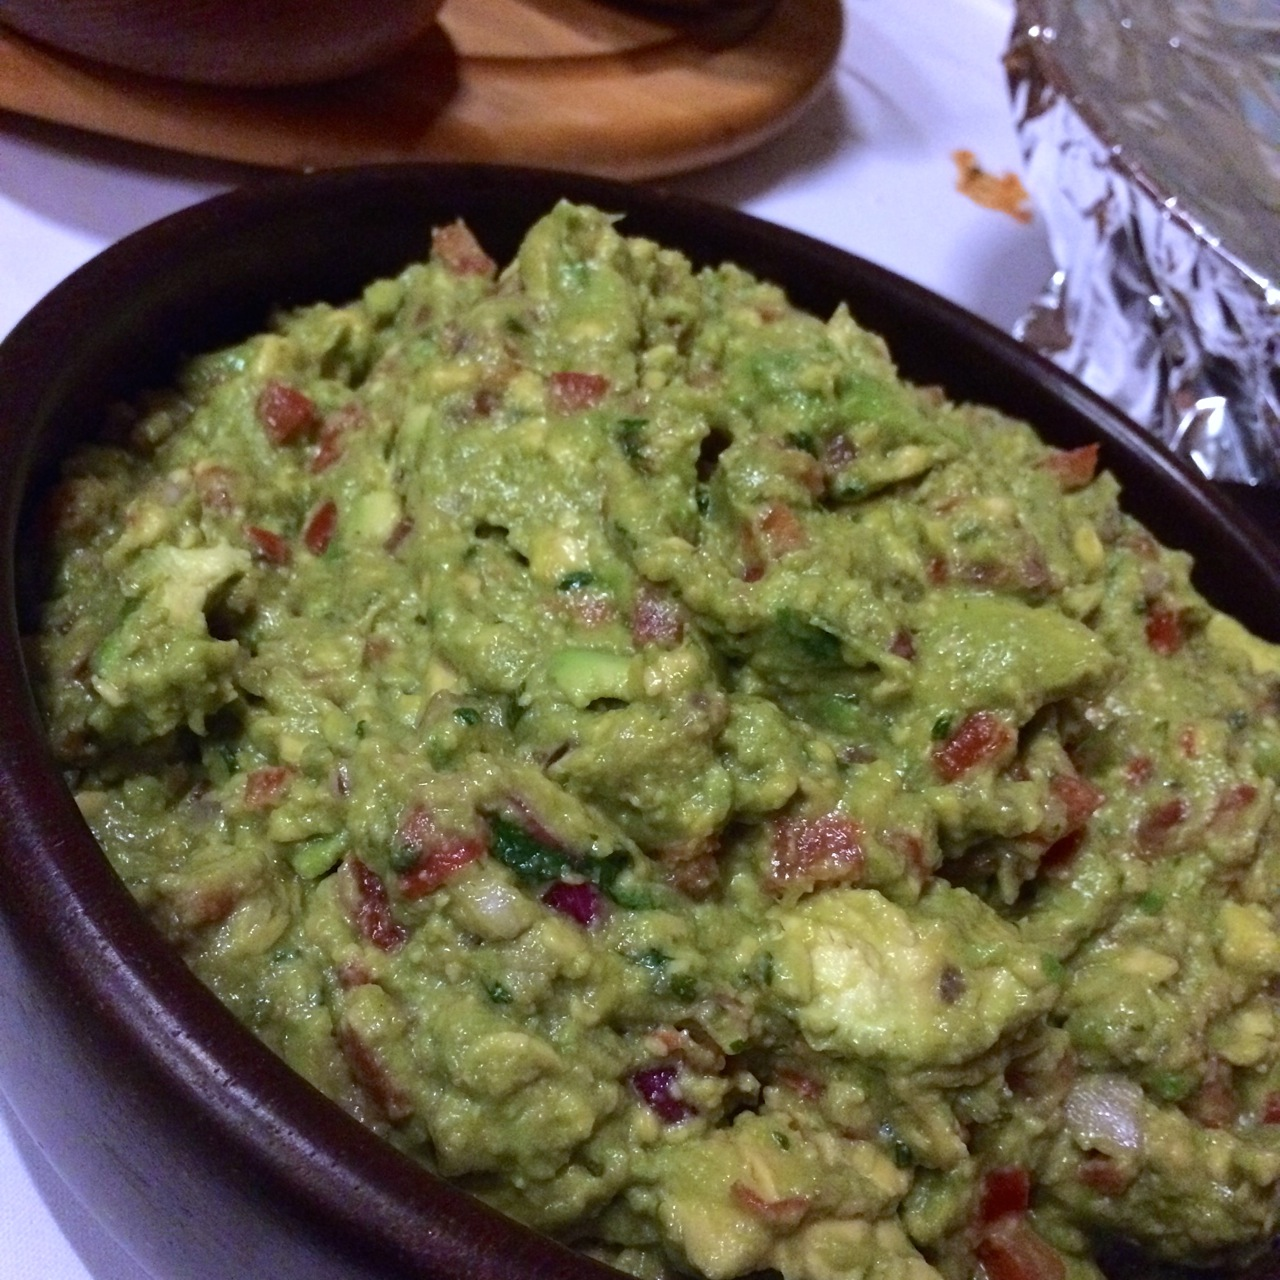 https://i2.wp.com/fatgayvegan.com/wp-content/uploads/2016/01/guacamole.jpg?fit=1280%2C1280